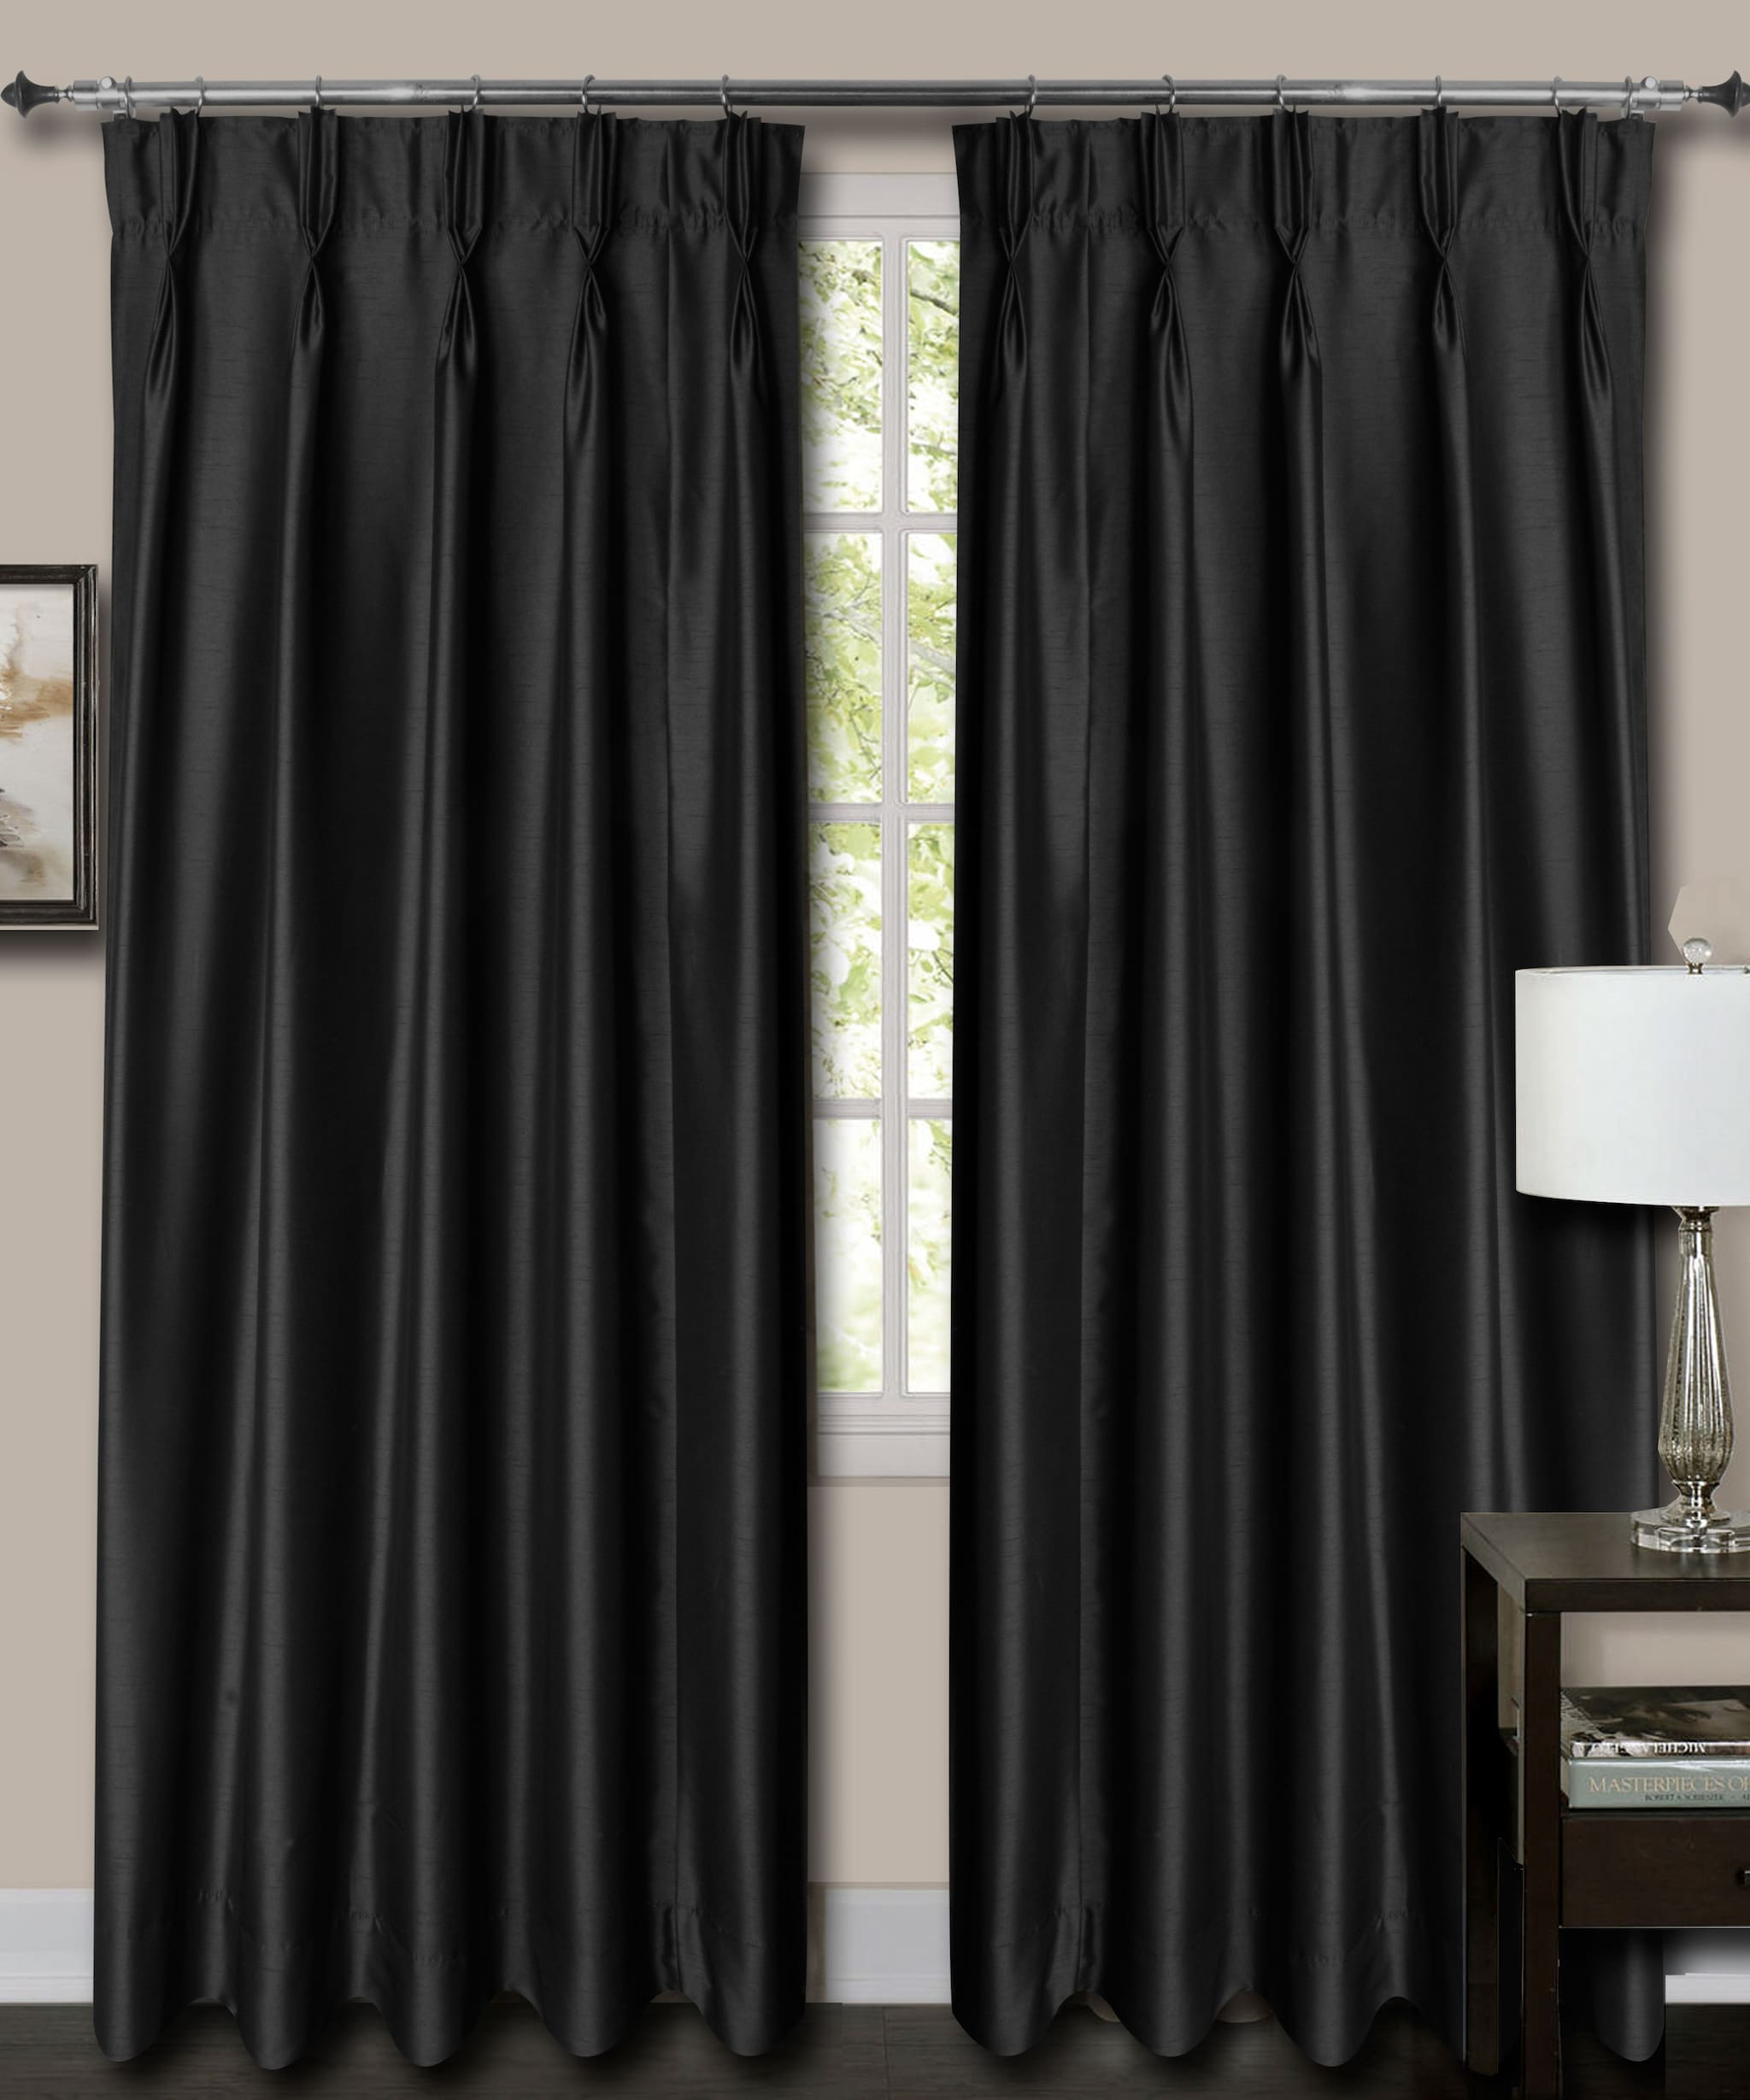 "French Pleat Top Black Faux Silk Dupioni Curtains. (24"" Wide,12 Feet Long,Thick Lining)"